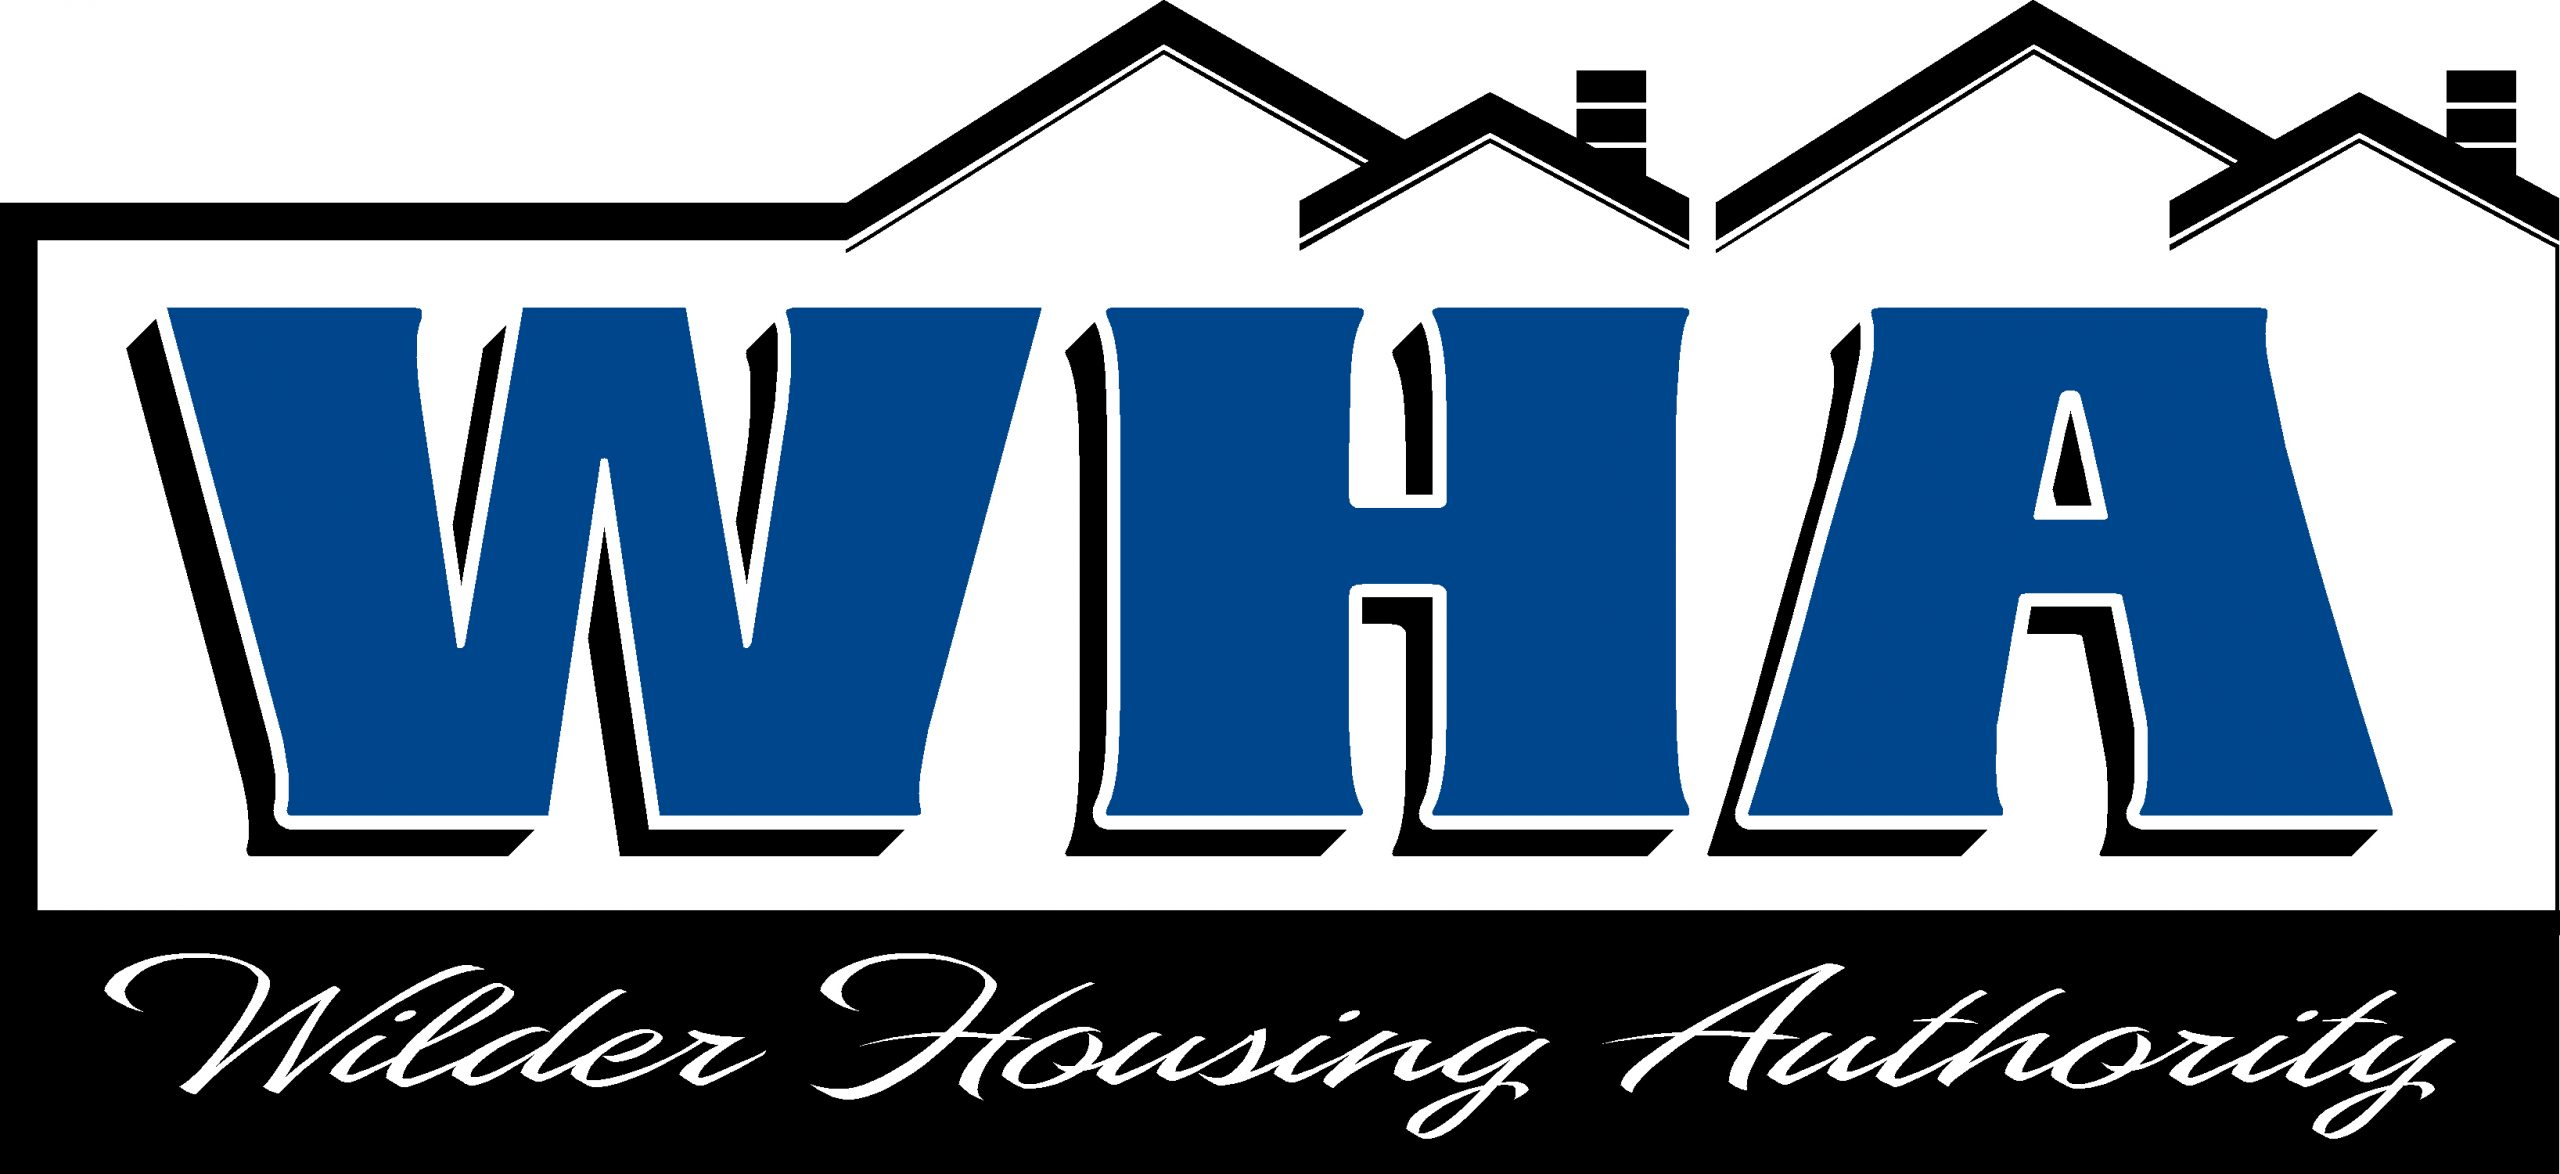 Wilder Housing Authority